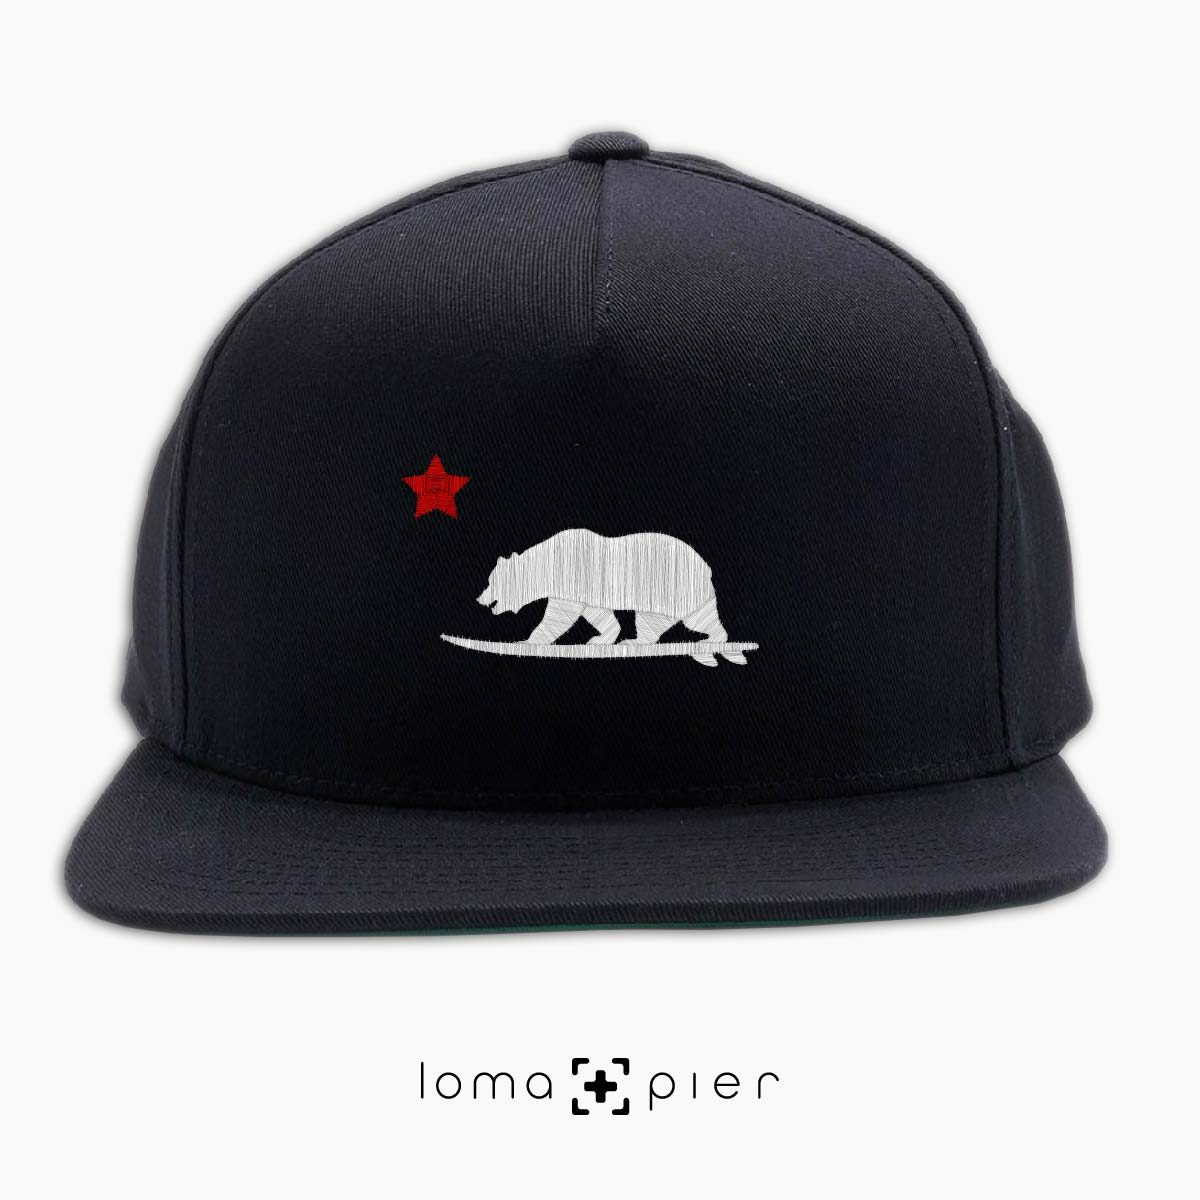 CALI SURFER icon embroidered on a black classic snapback hat with white and red thread by loma+pier hat store